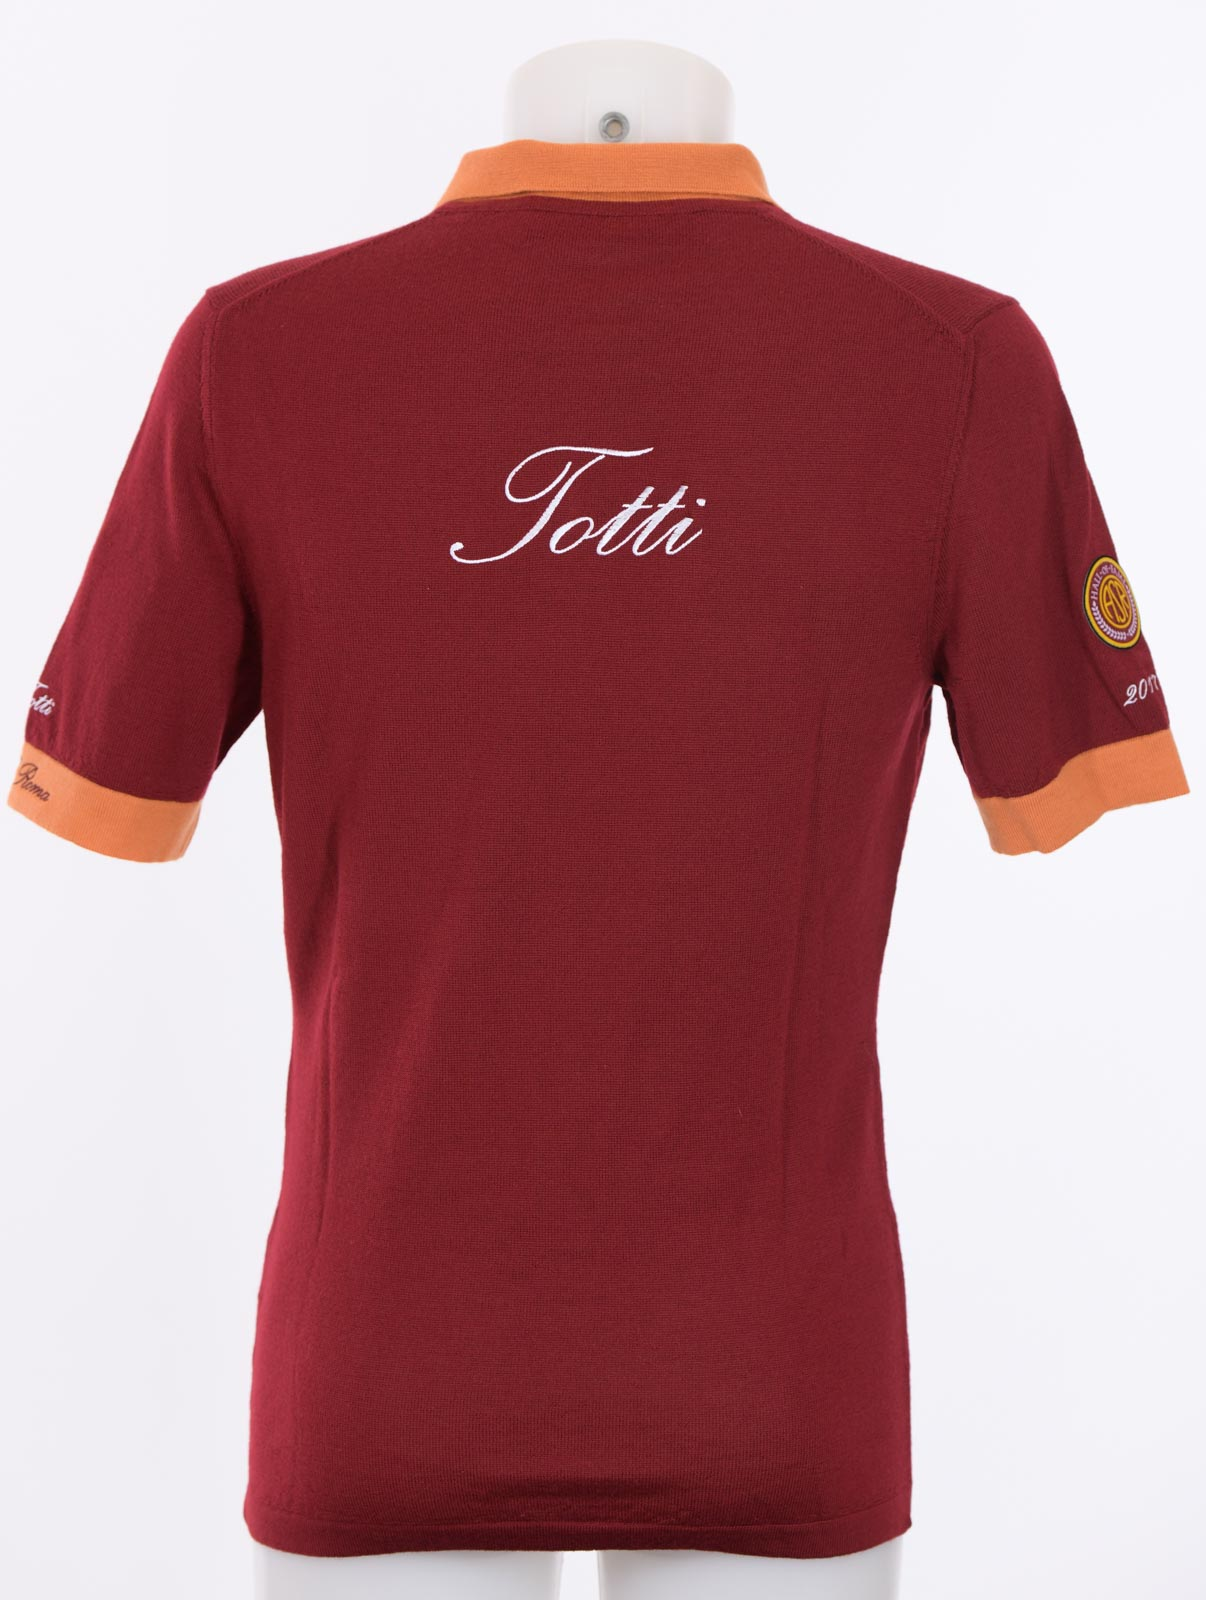 https://2.bp.blogspot.com/-fFSic5-7fLw/W_1Hq0TmBZI/AAAAAAABvyg/FgbG8no4UlYS2lRcAdZDnR5ZxutwTxEfwCLcBGAs/s1600/special-as-roma-francesco-totti-hall-of-fame-collection%2B%25284%2529.jpg